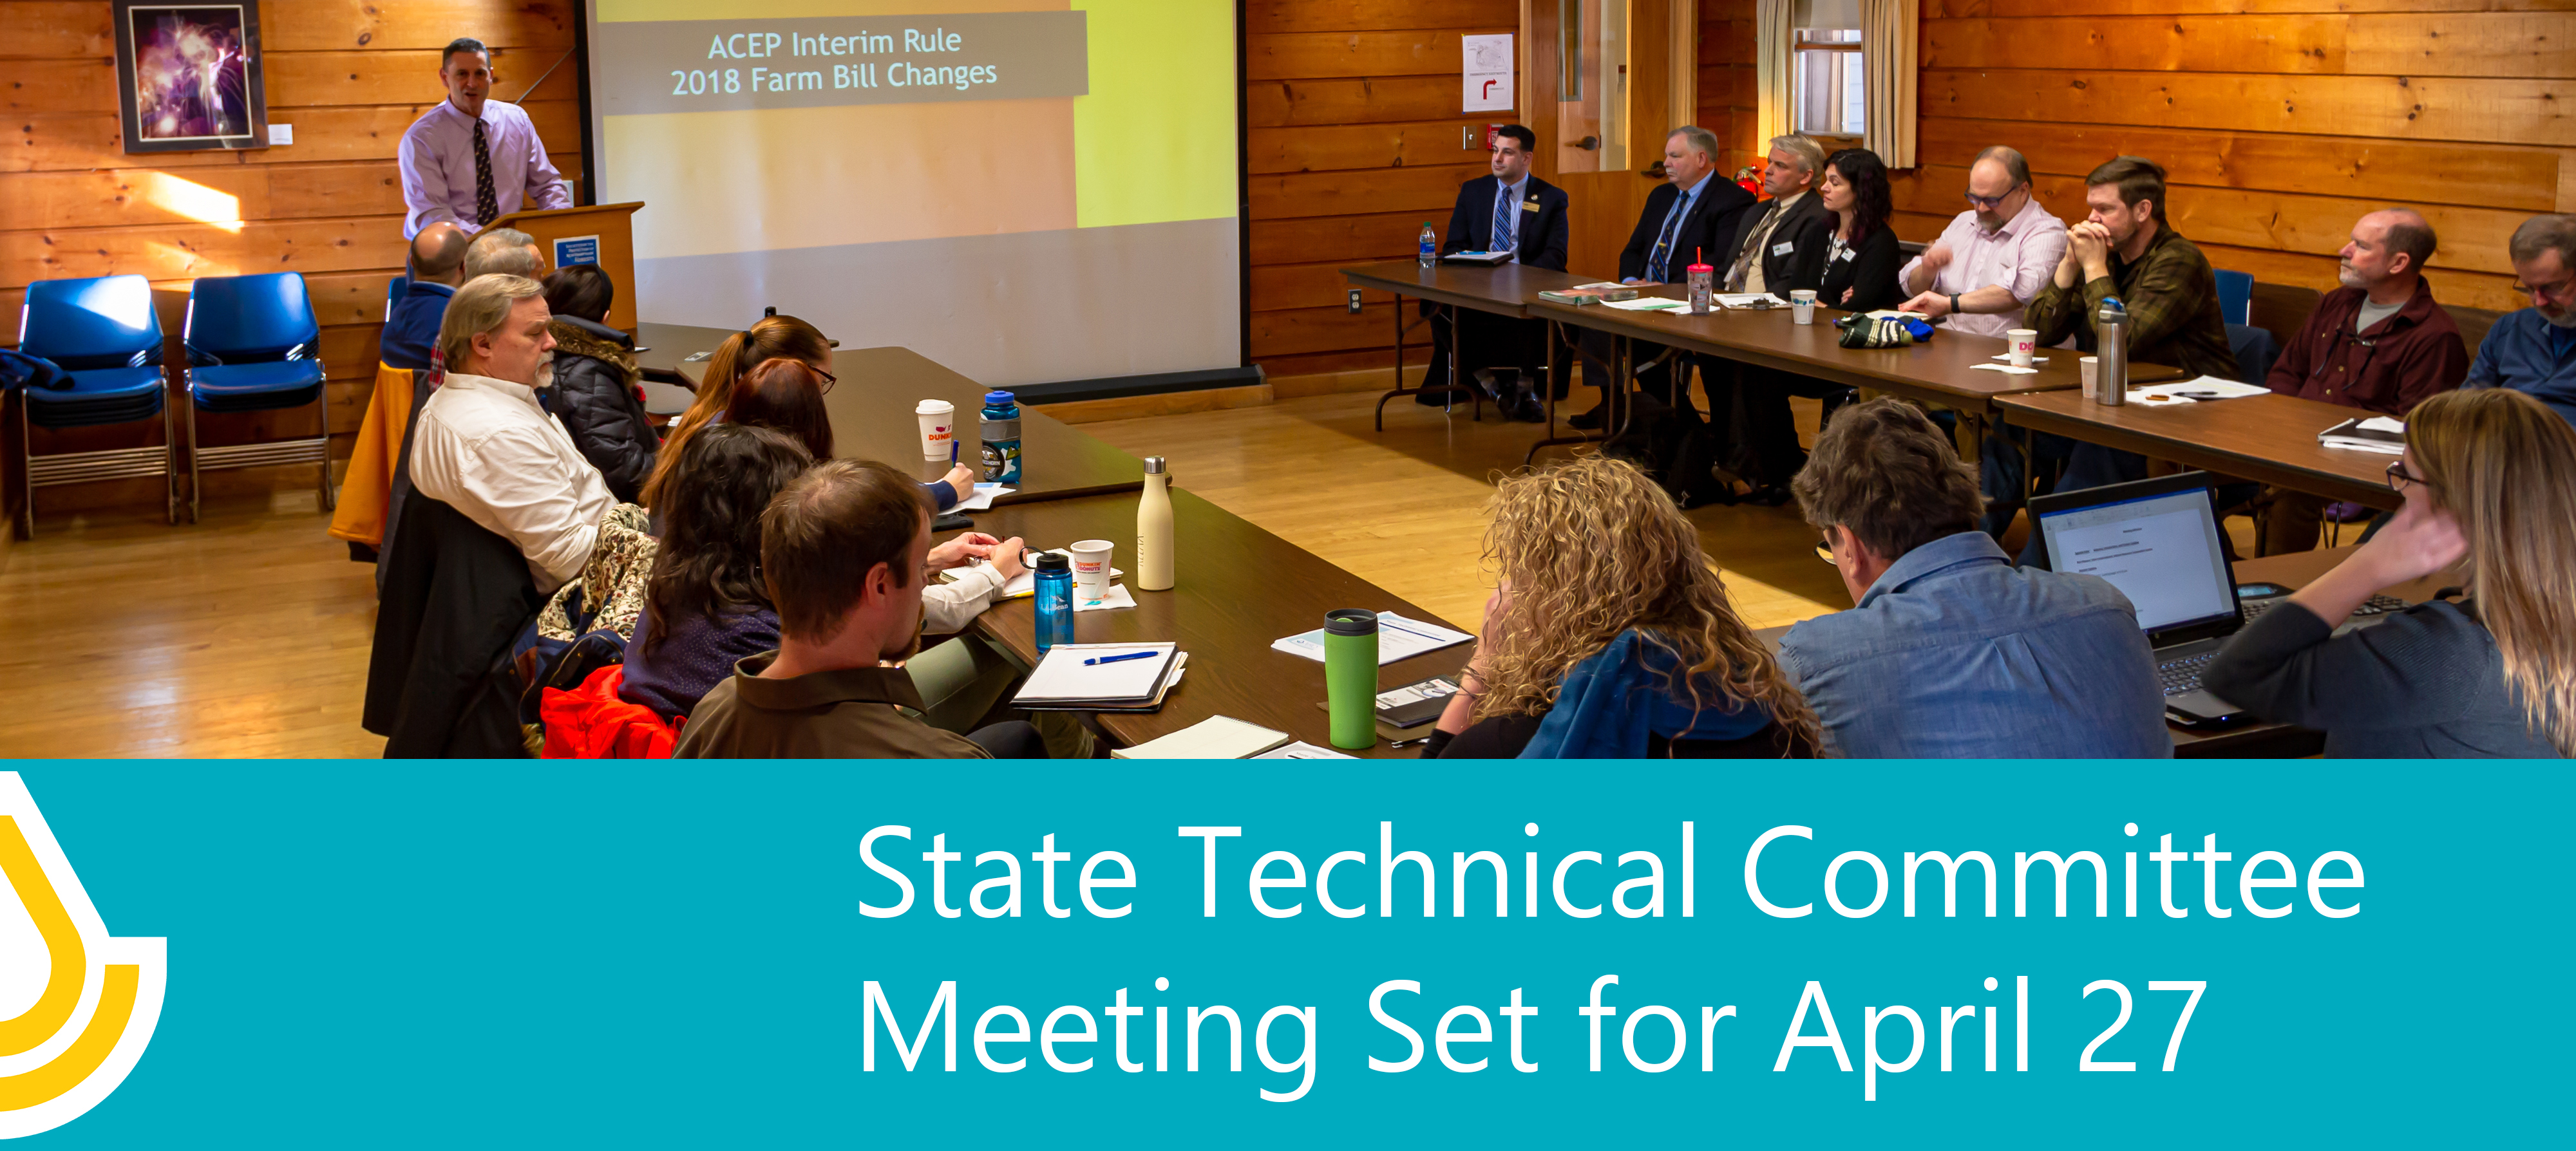 A banner advertising the State Technical Committee meeting to be held on 27 April, 2021 form 9:30-noon on Microsoft Teams.